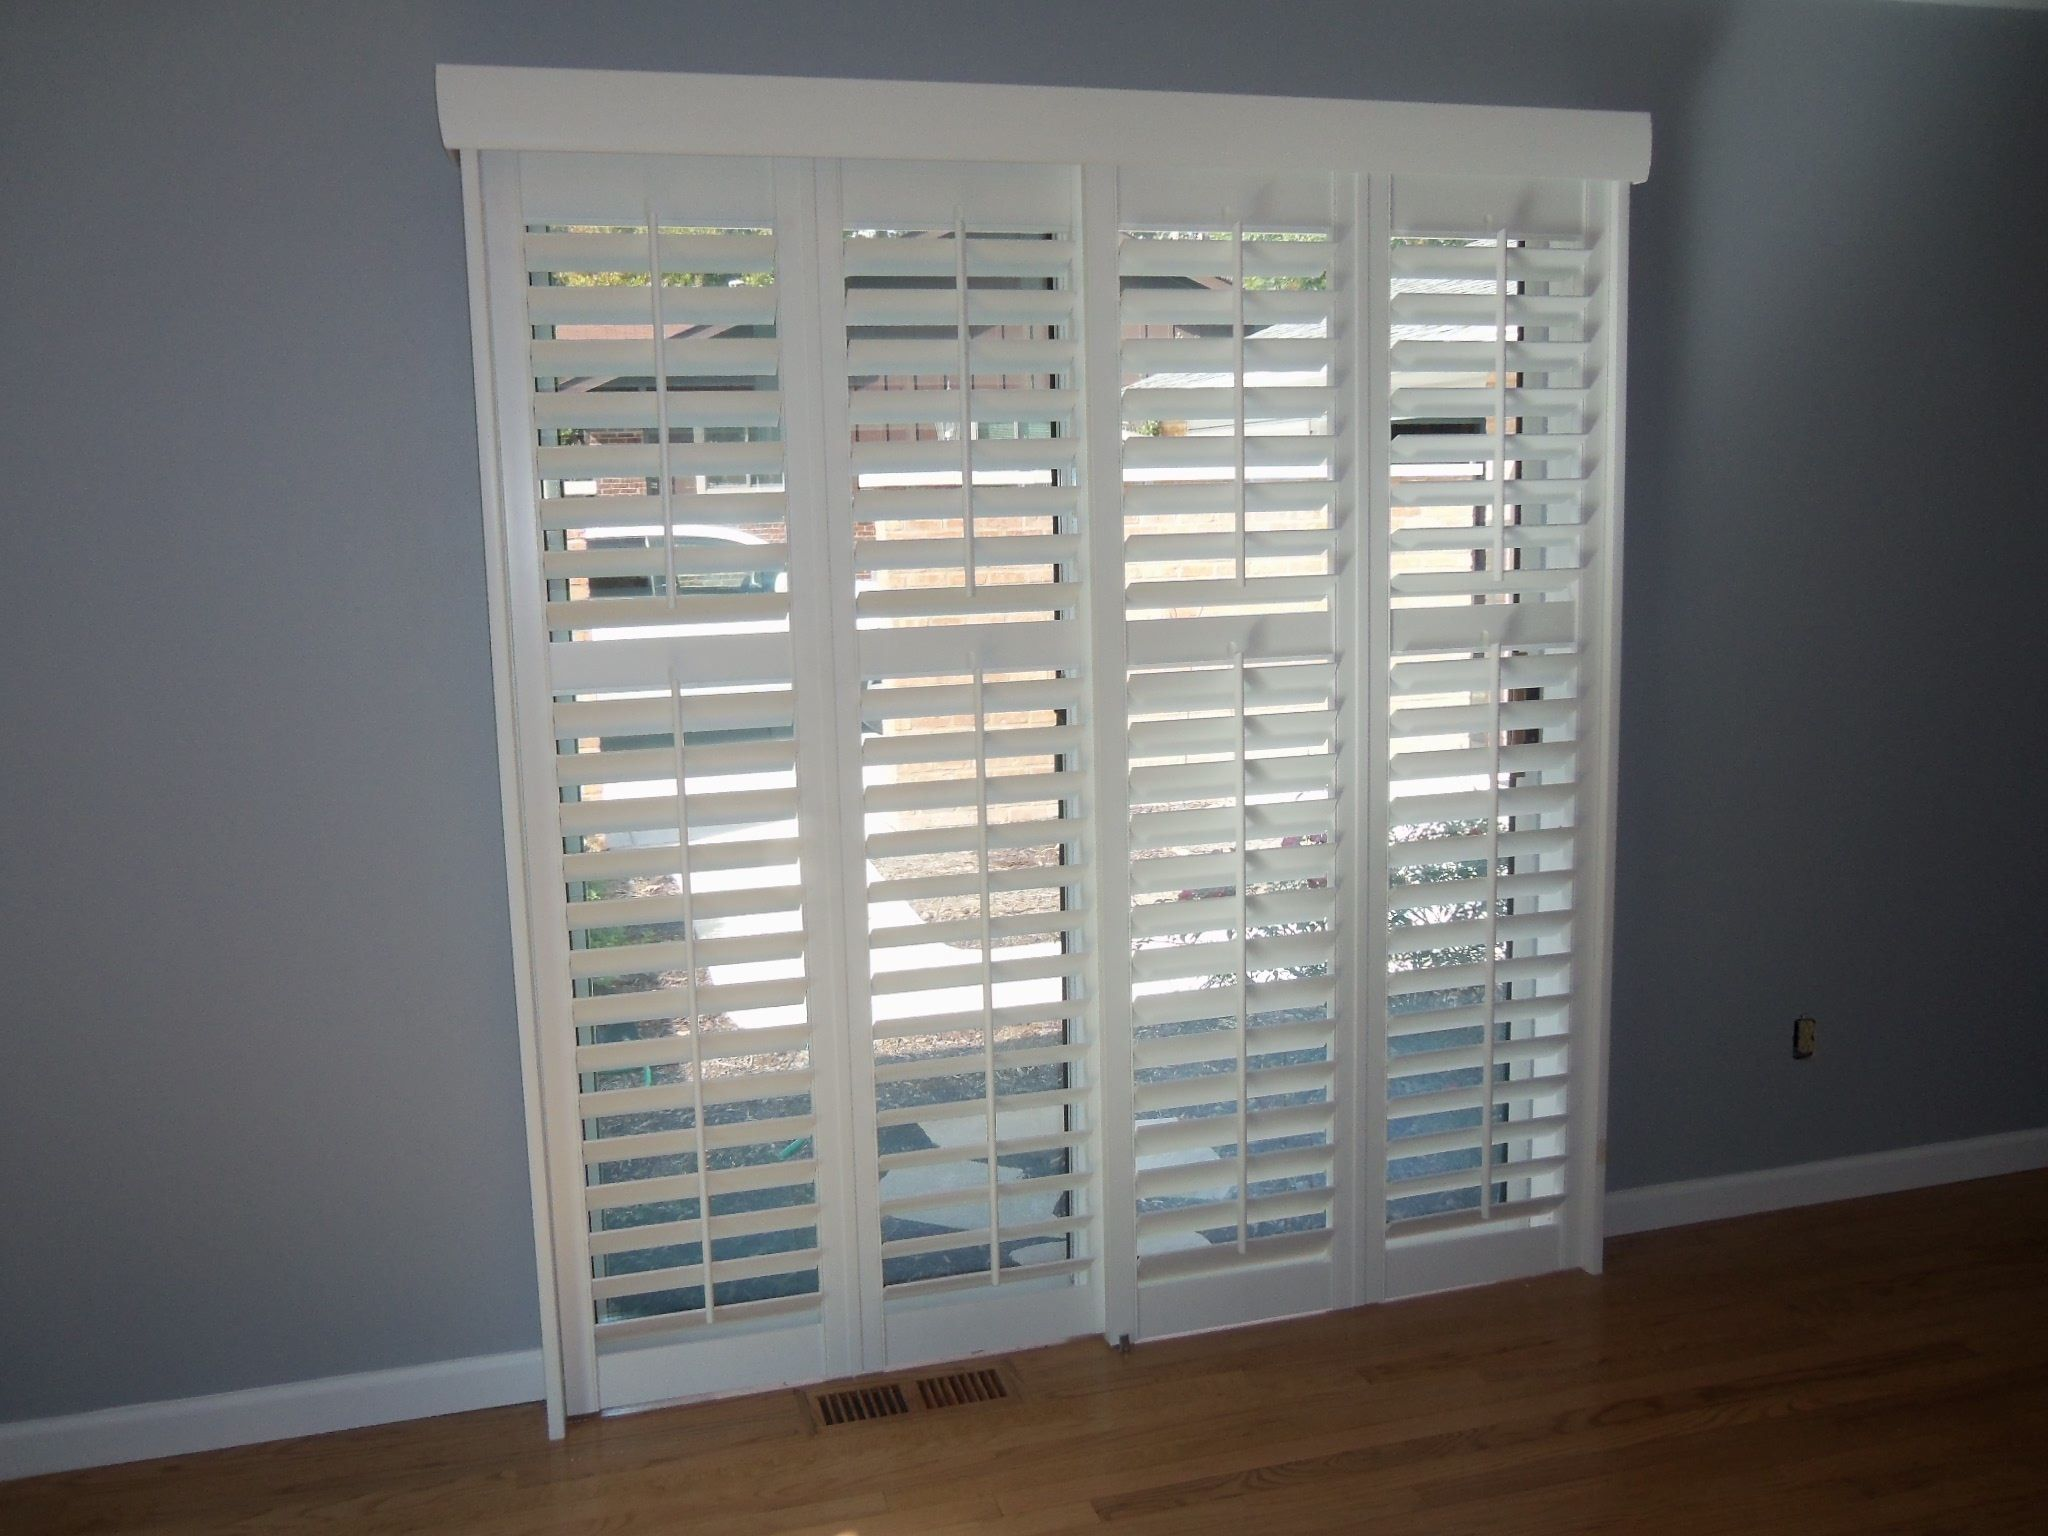 Window coverings for french doors patio doors - Buy Customized Shades For French Doors Drapery Room Ideas